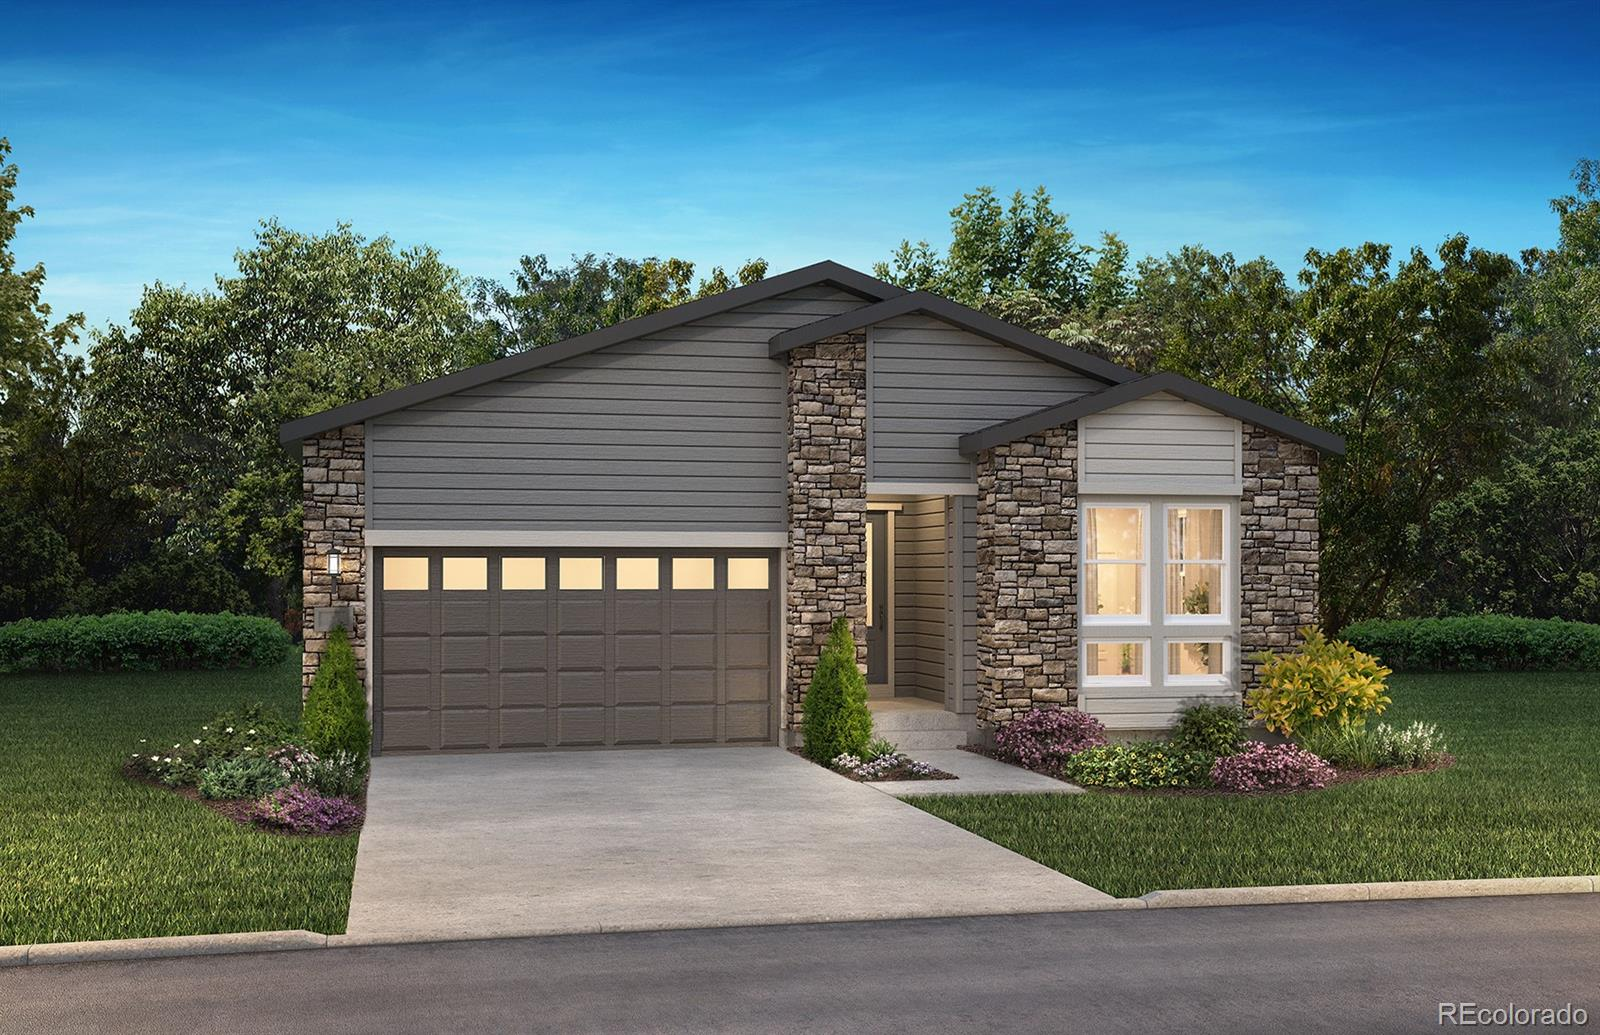 Available October / November 2020. This gorgeous Traditions ranch plan in The Canyons features 2 beds, 2.5 baths, great room, kitchen, study, full unfinished walkout basement, 3 car garage and more. Beautiful designer finishes and upgrades including 10' ceilings and 8' doors, great room w/Cosmo fireplace w/tile srround to the ceiling; kitchen including walk-in pantry, GE Cafe stainless appliances, Aristocraft Purestyle stacked cabinets in Glacier Grey, and white quartz counters; owner's entry/mudroom w/built in bench, cubbies & hooks; Luxury vinyl plank flooring, Craftsman style stair railing and more. Enjoy warm summer evenings on the covered patio off of the great room.  The Canyons offers single family homes for every lifestyle and thoughtfully blends luxury, energy efficiency and functionality.  Don't miss your opportunity. Welcome Home!